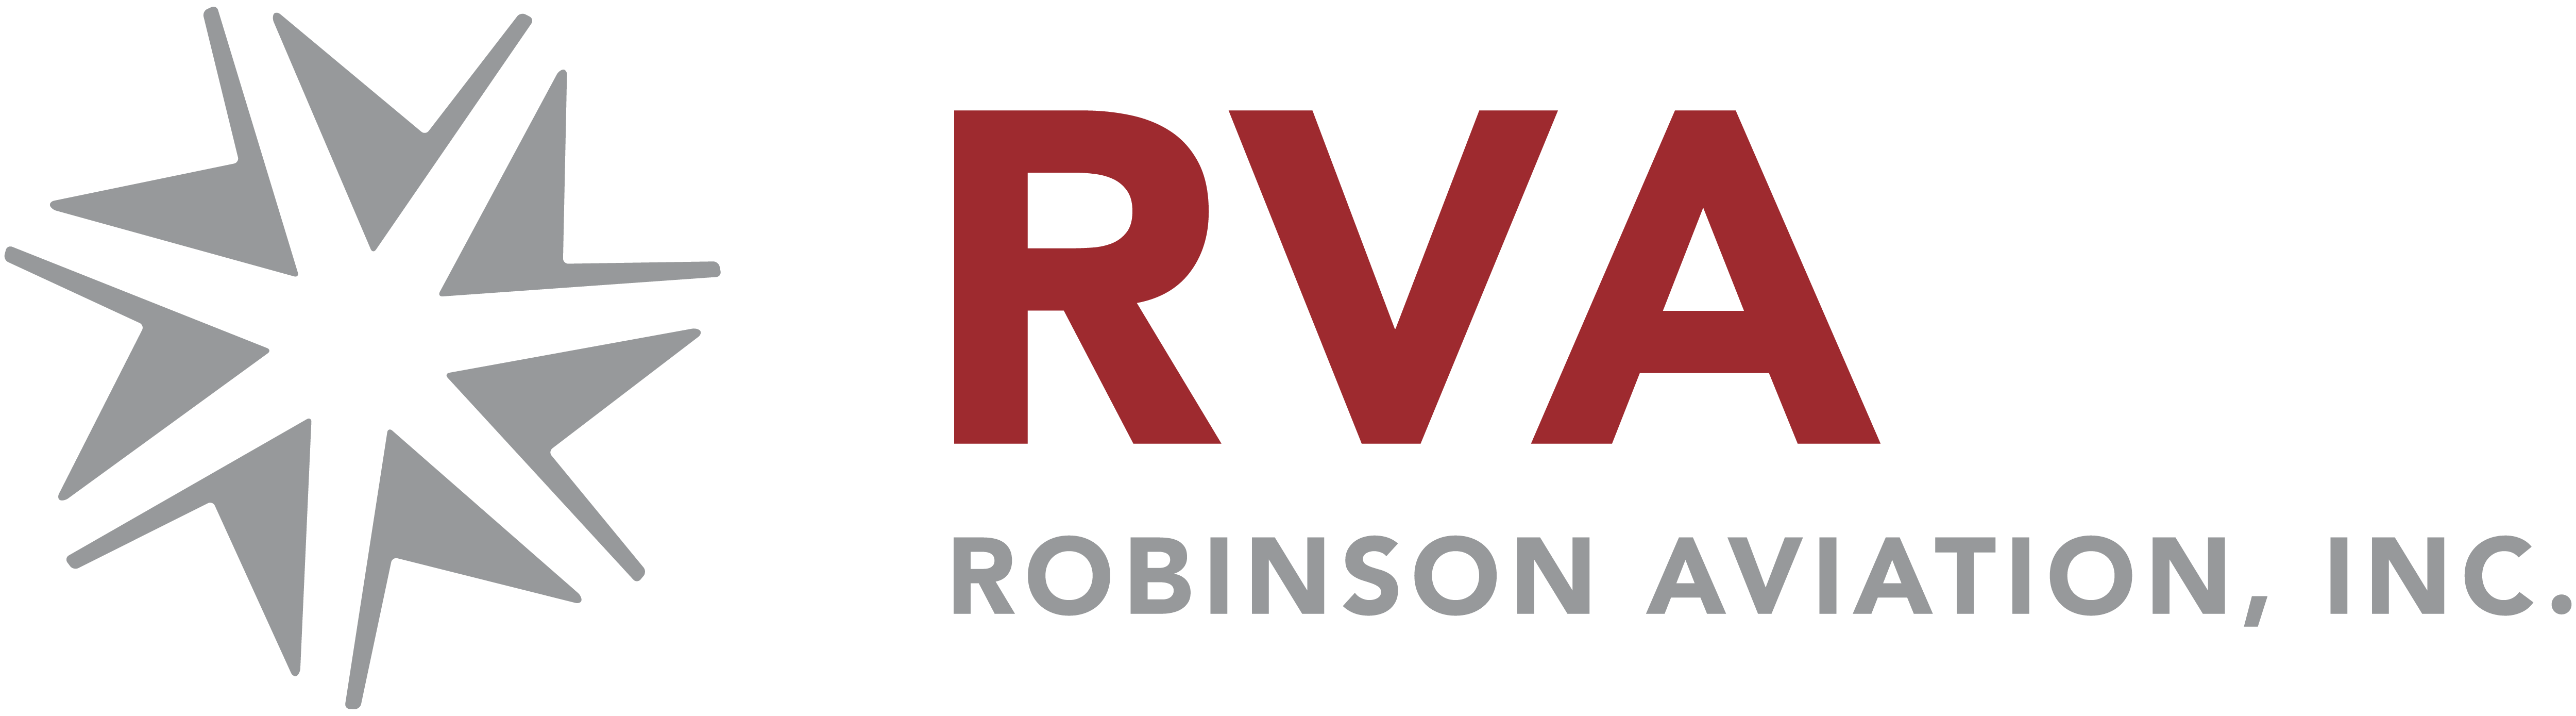 Robinson Aviation (RVA), Inc.